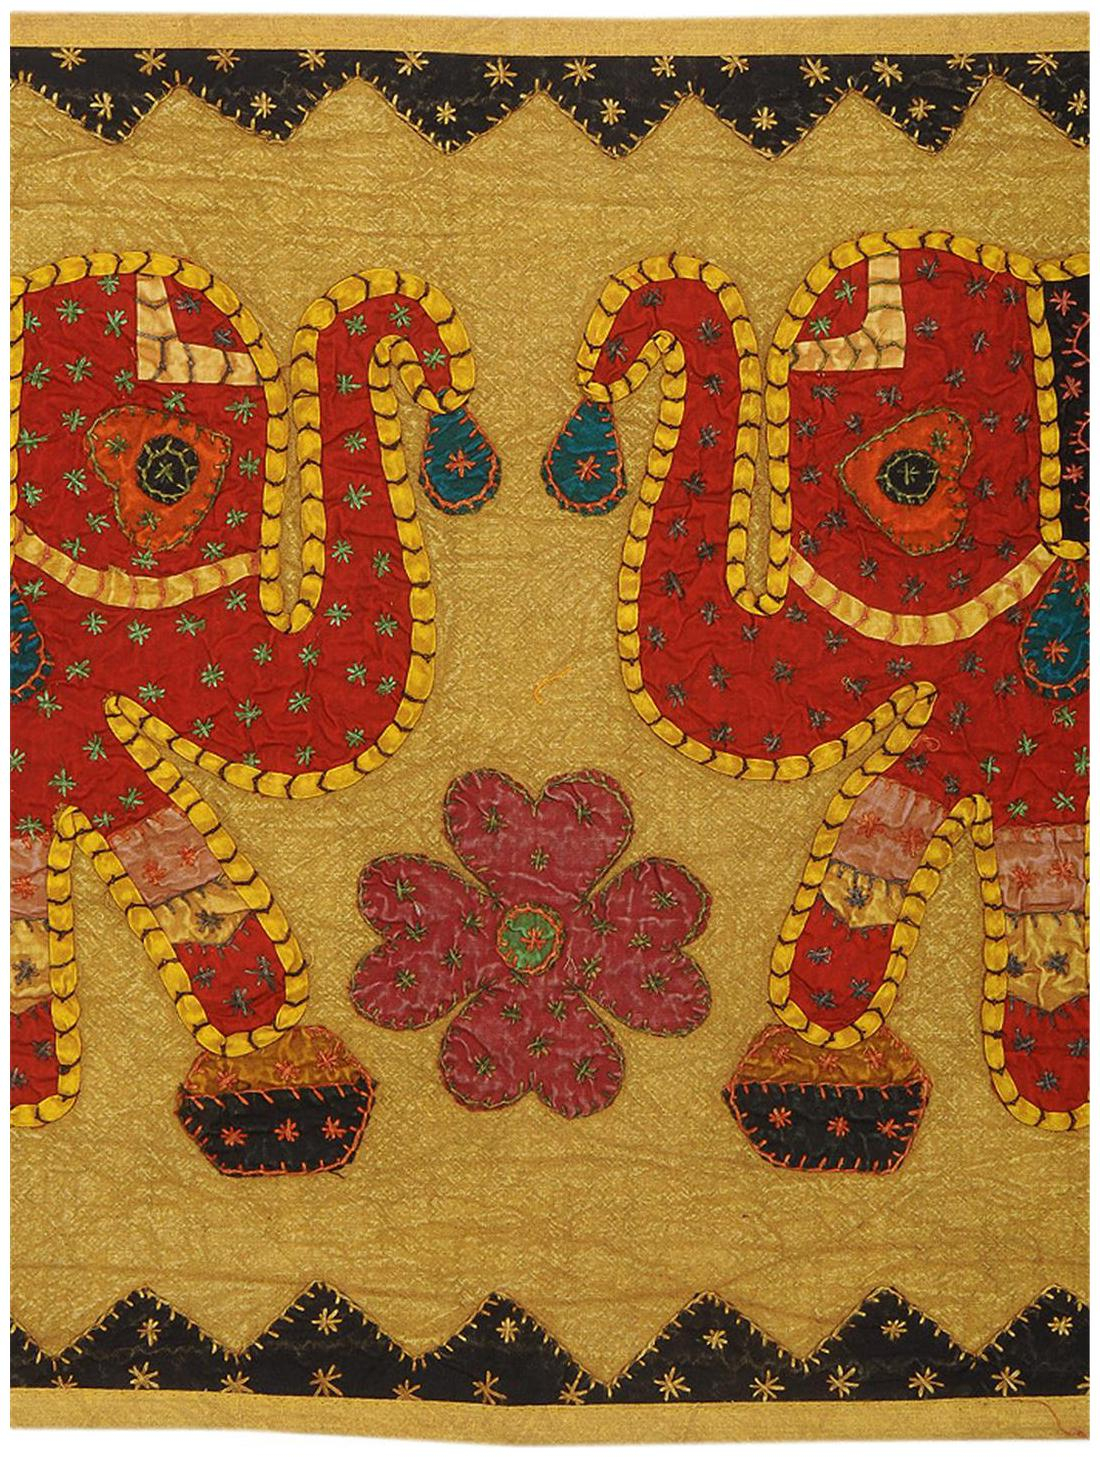 Rajrang Best Wall Hanging Cloth Tapestry Fabric Caotton With Embroidery Work Hanging Design Modern Tapestry For Home D Cor In Recent Blended Fabric Trust In The Lord Tapestries And Wall Hangings (View 9 of 20)